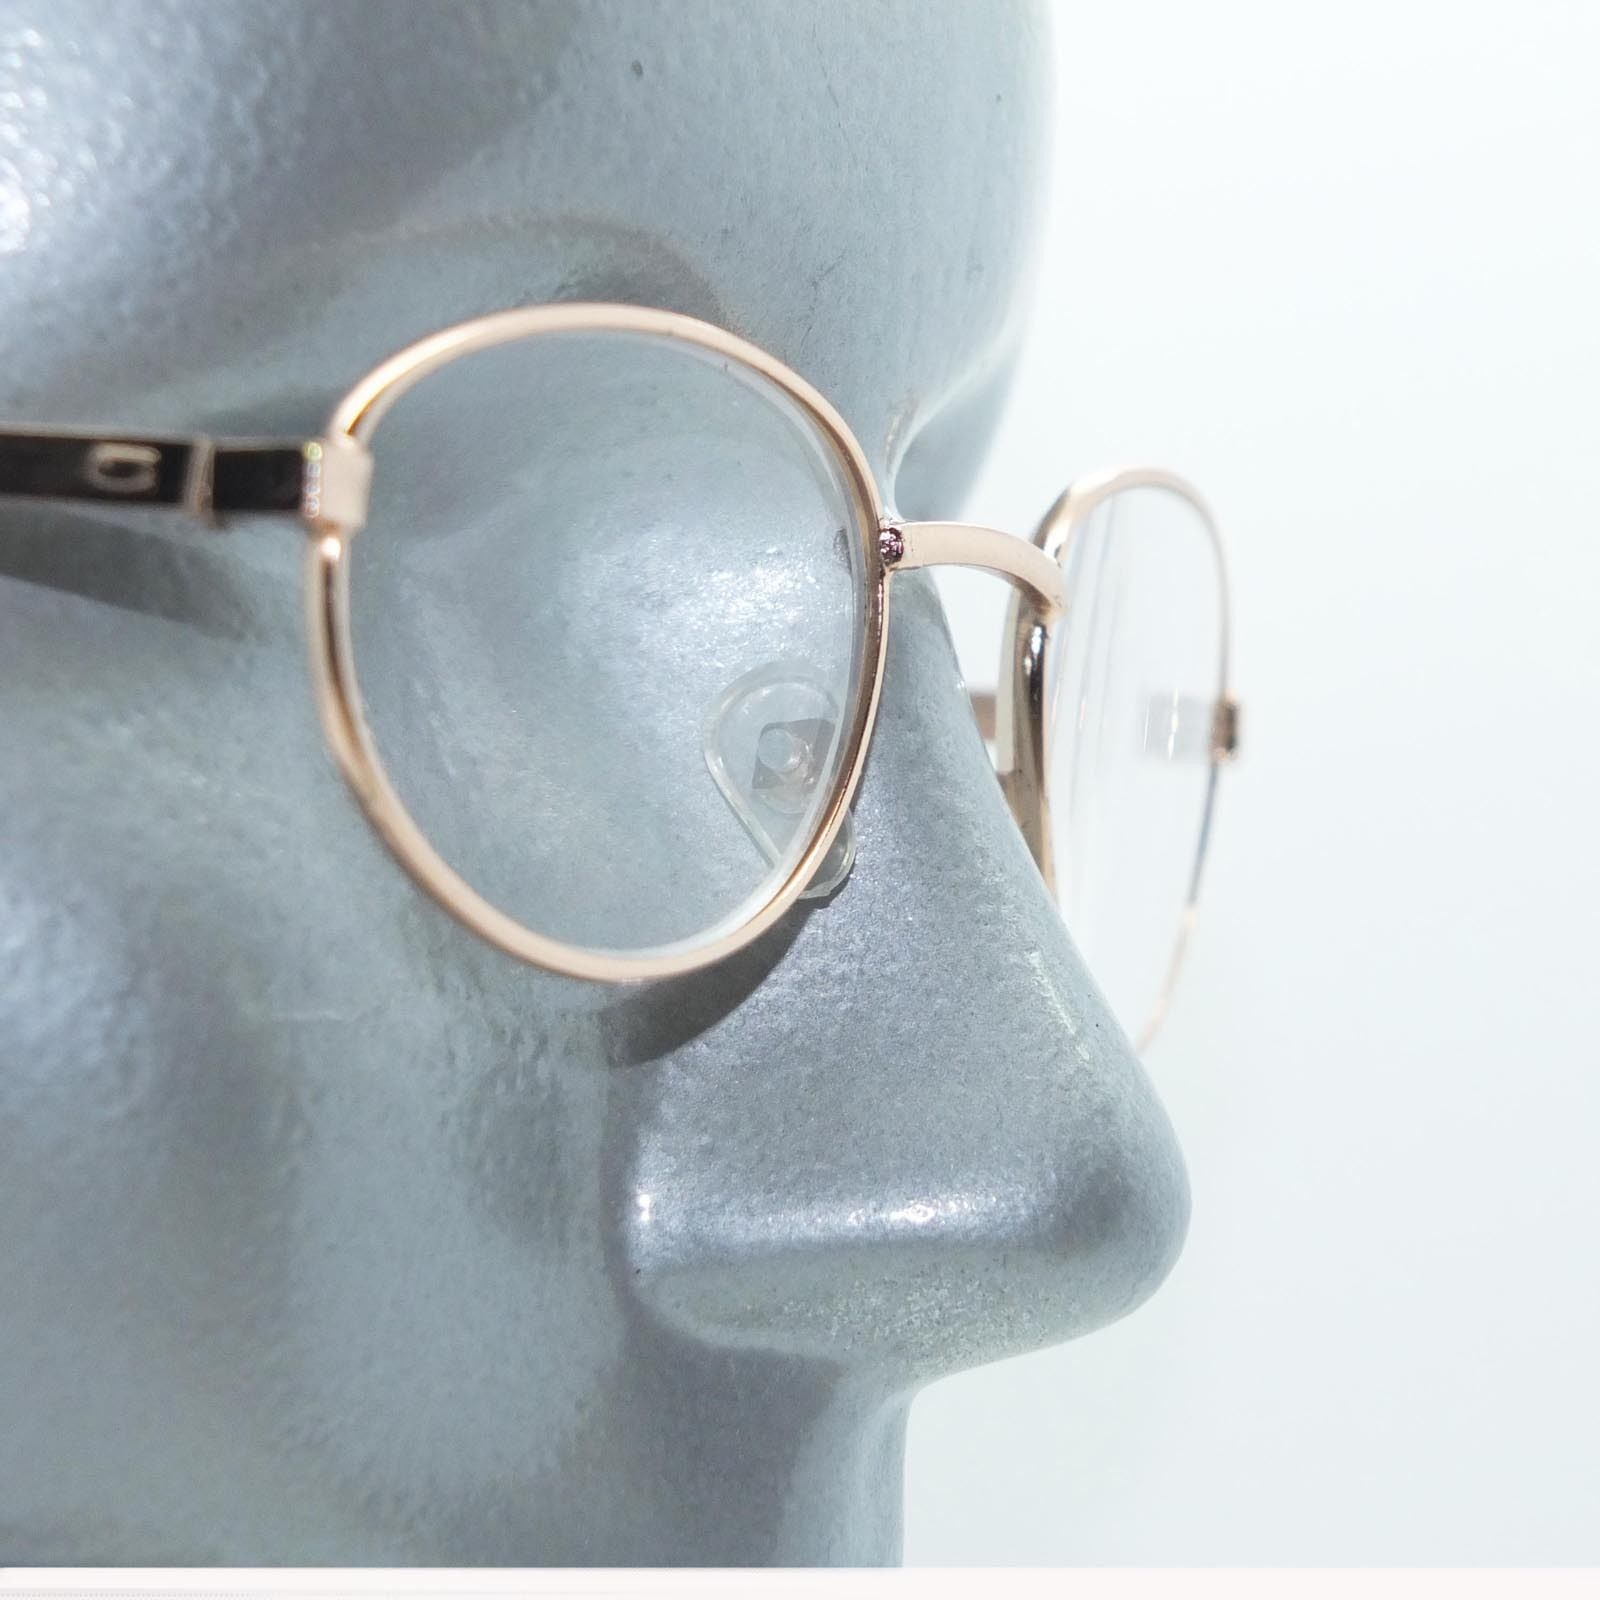 e275bfc8f4 Super Petite Delicate Lightweight Reading and 50 similar items. S l1600